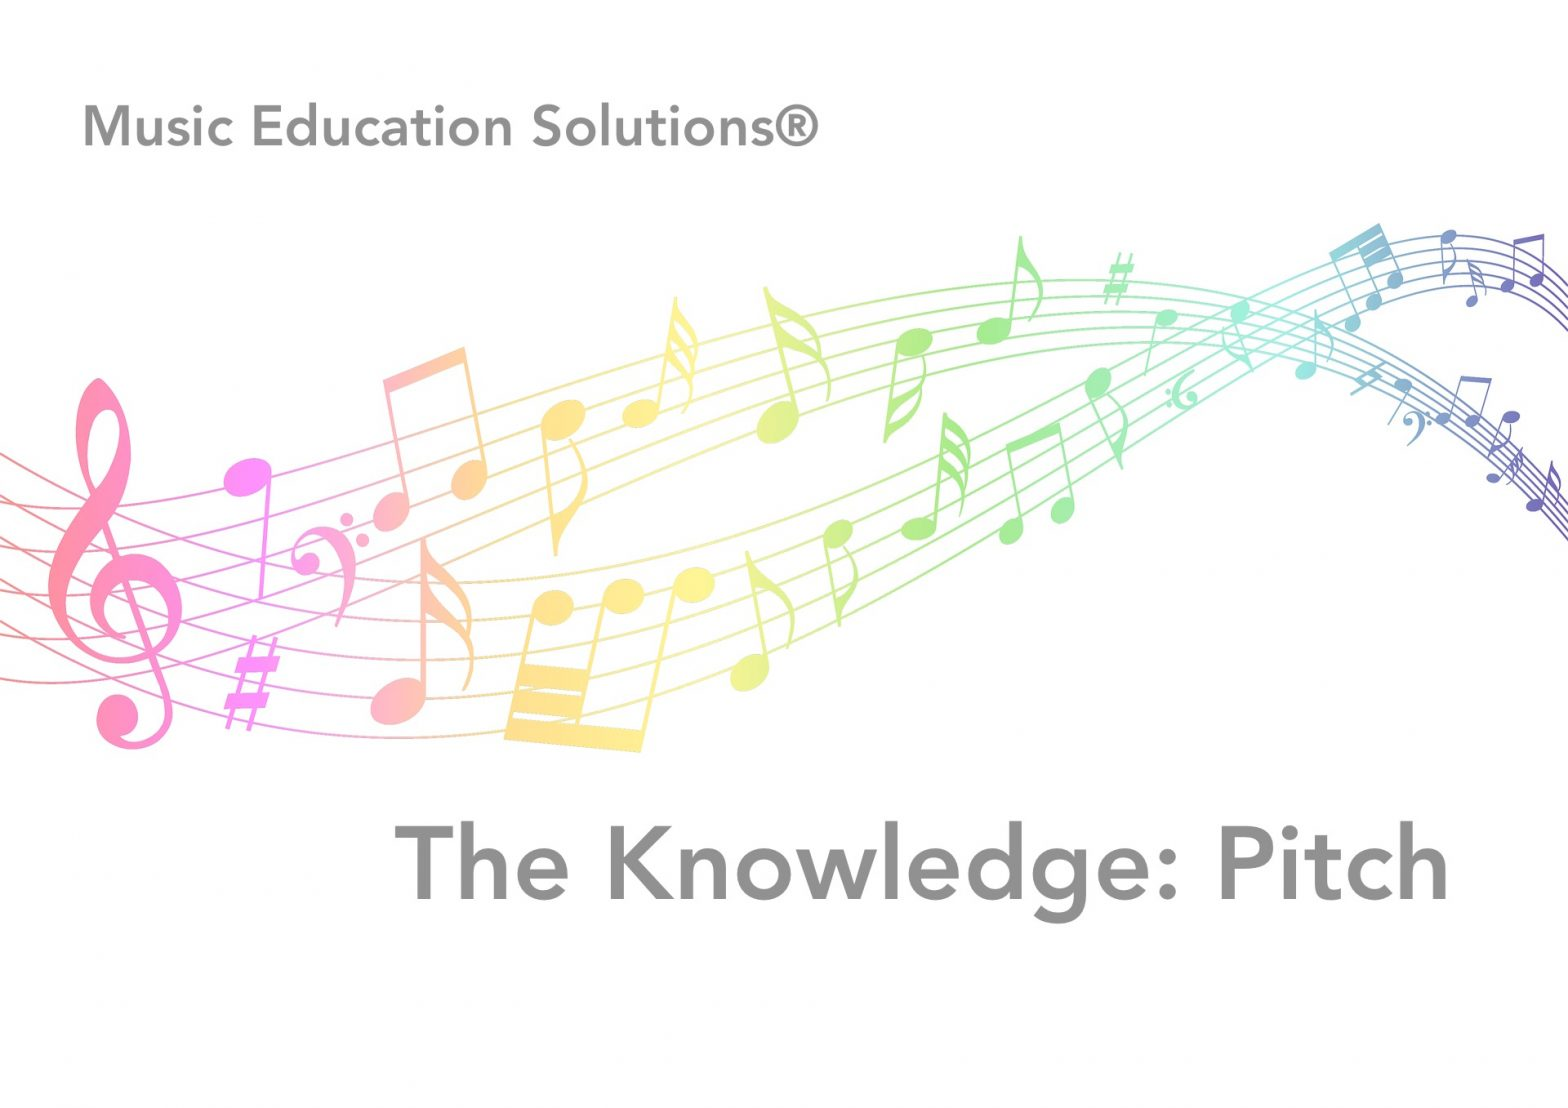 The Knowledge: Pitch Vocabulary